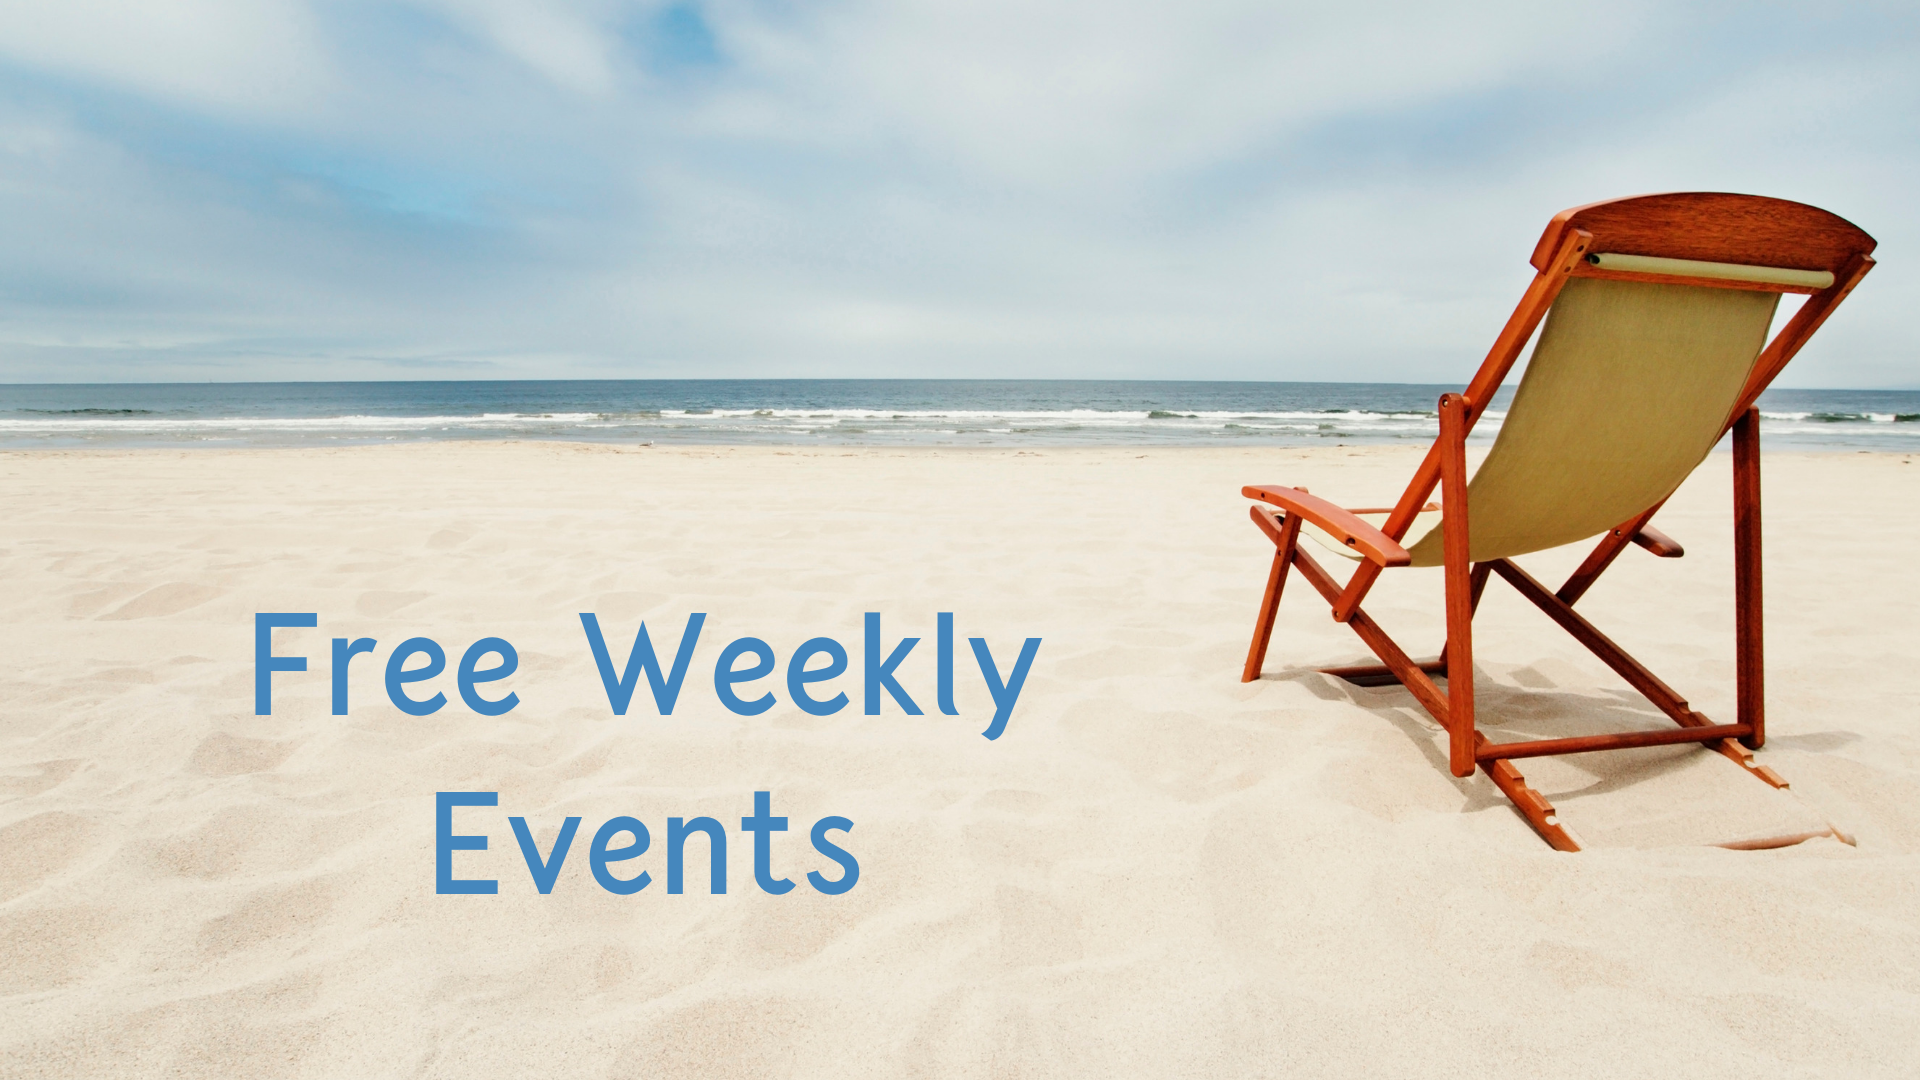 Free Weekly Events in Each Town